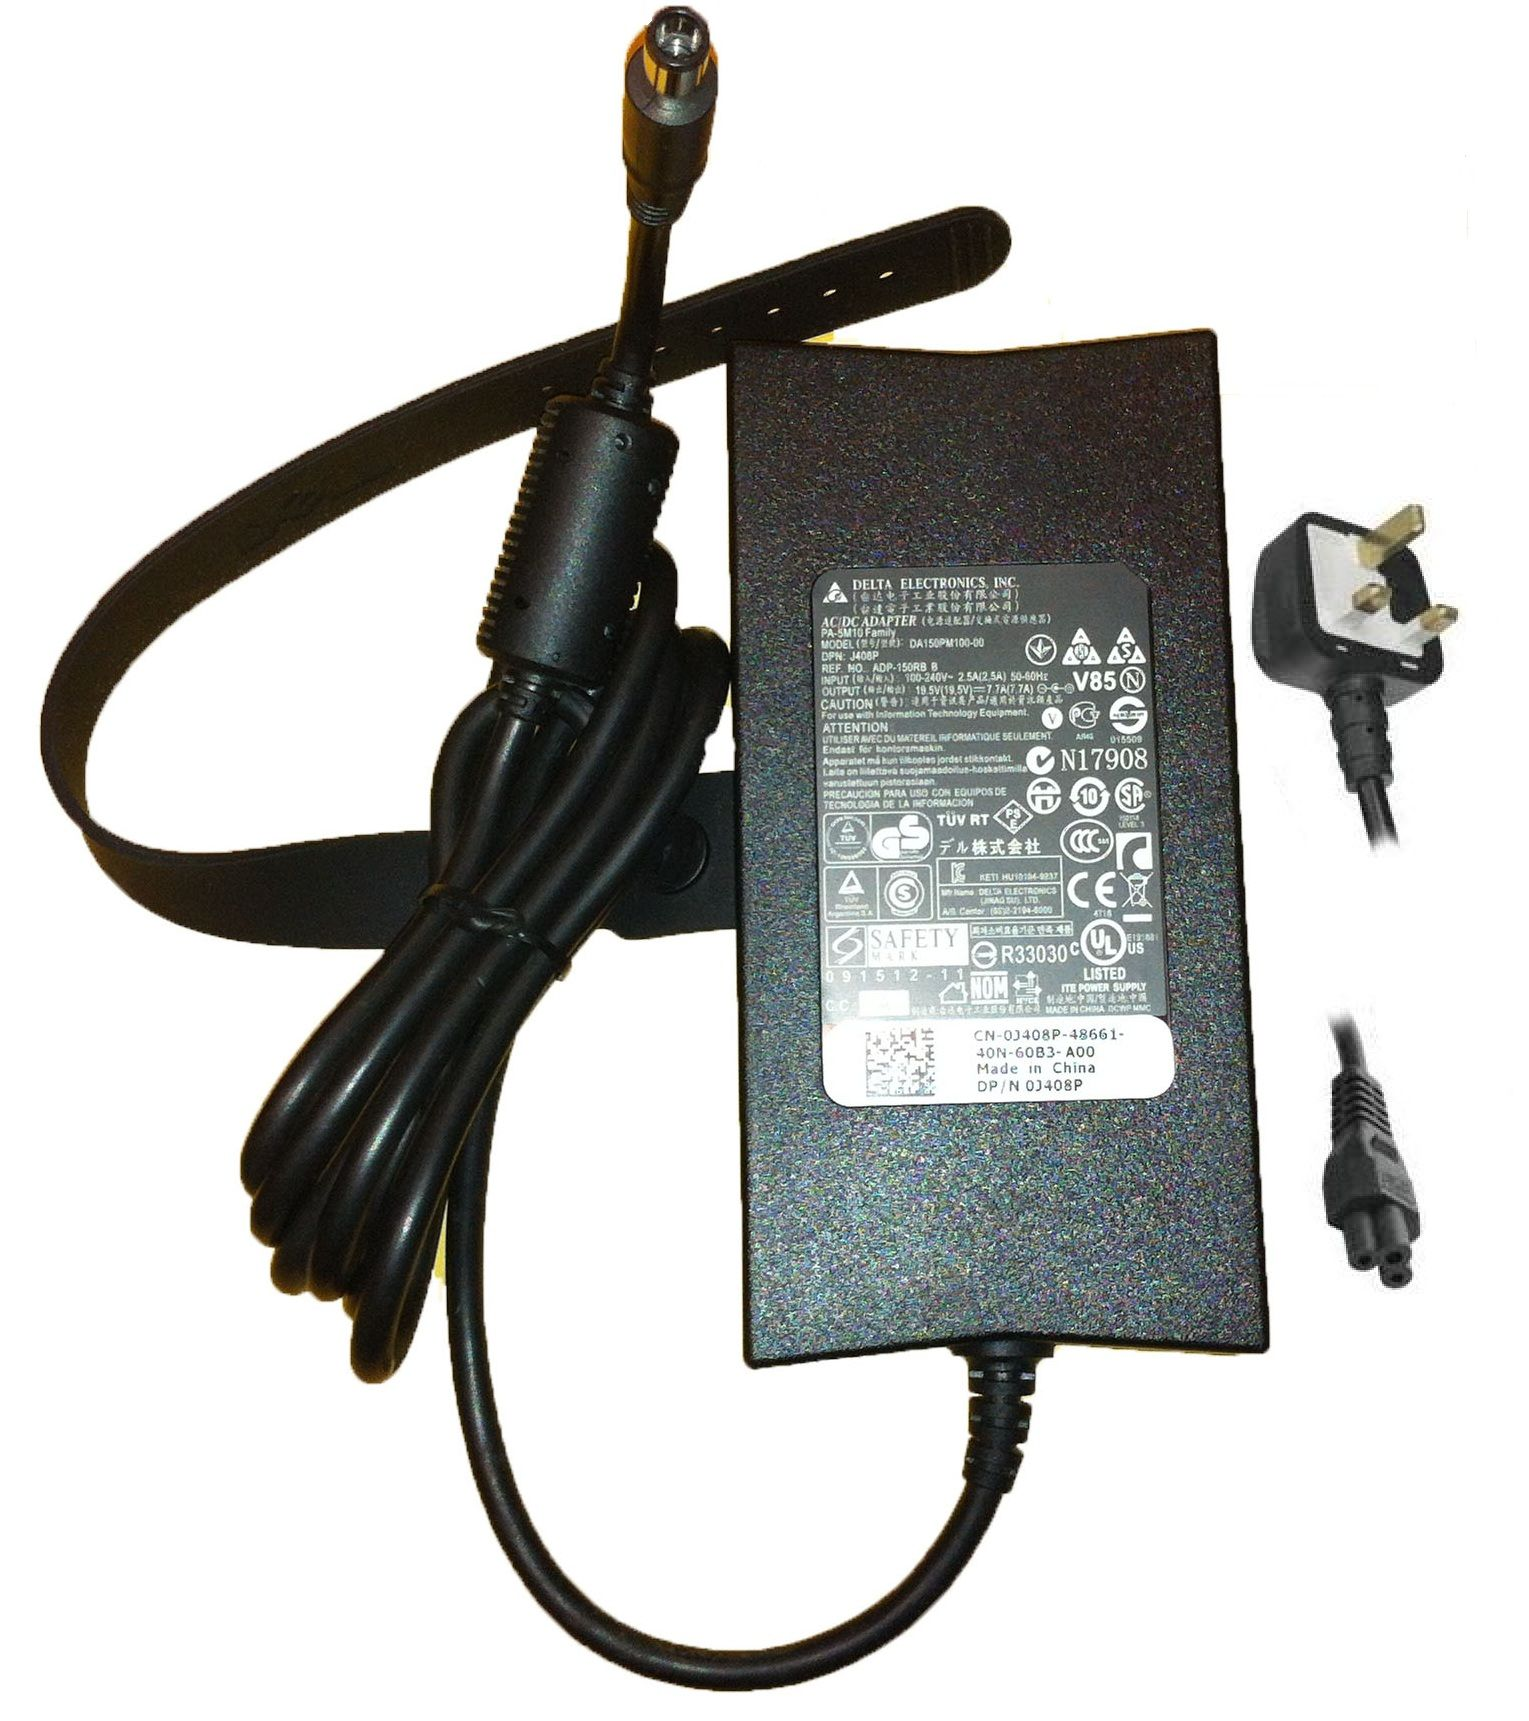 Dell Inspiron 5160 Laptop Charger Pa-15